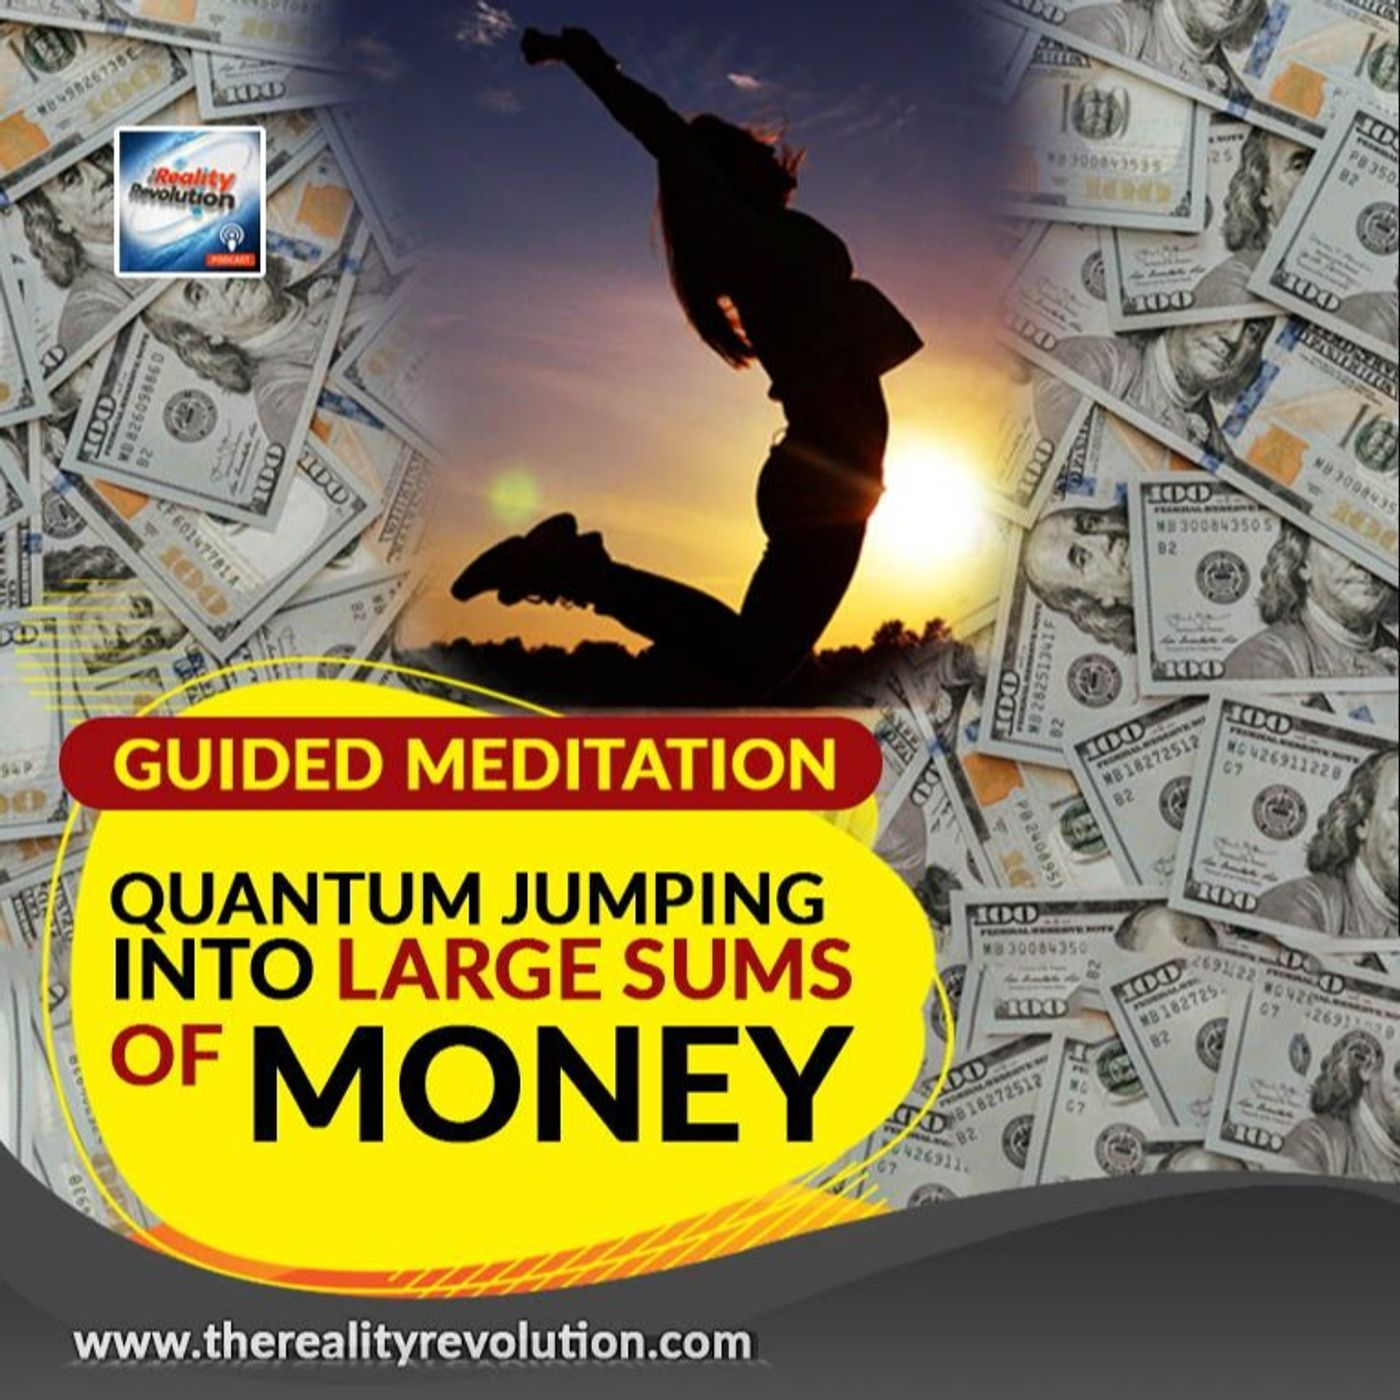 Guided Meditation - Quantum Jumping Into Large Sums Of Money